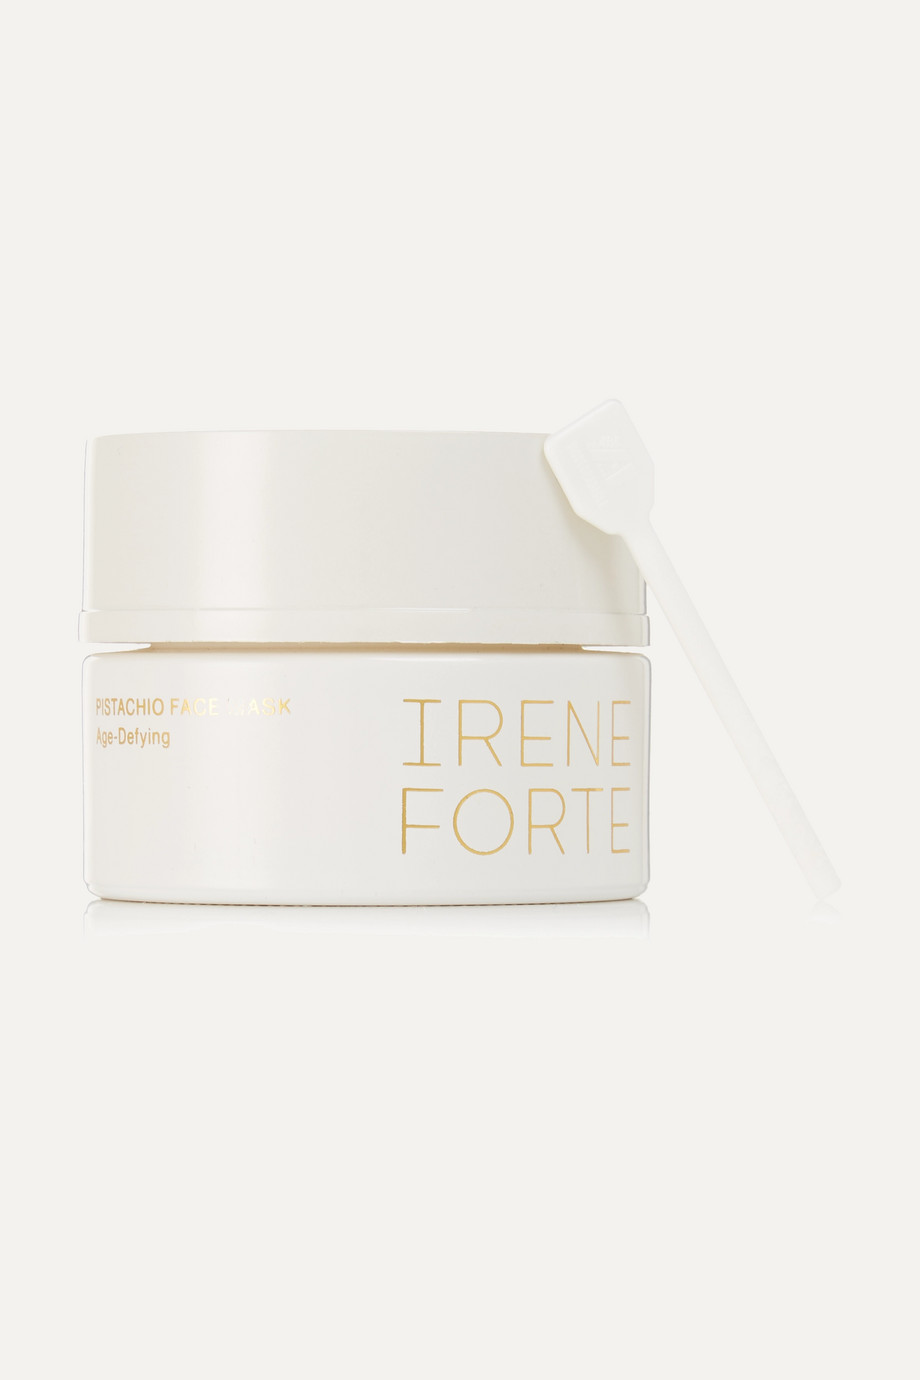 Irene Forte + NET SUSTAIN Age-Defying Pistachio Face Mask, 50ml